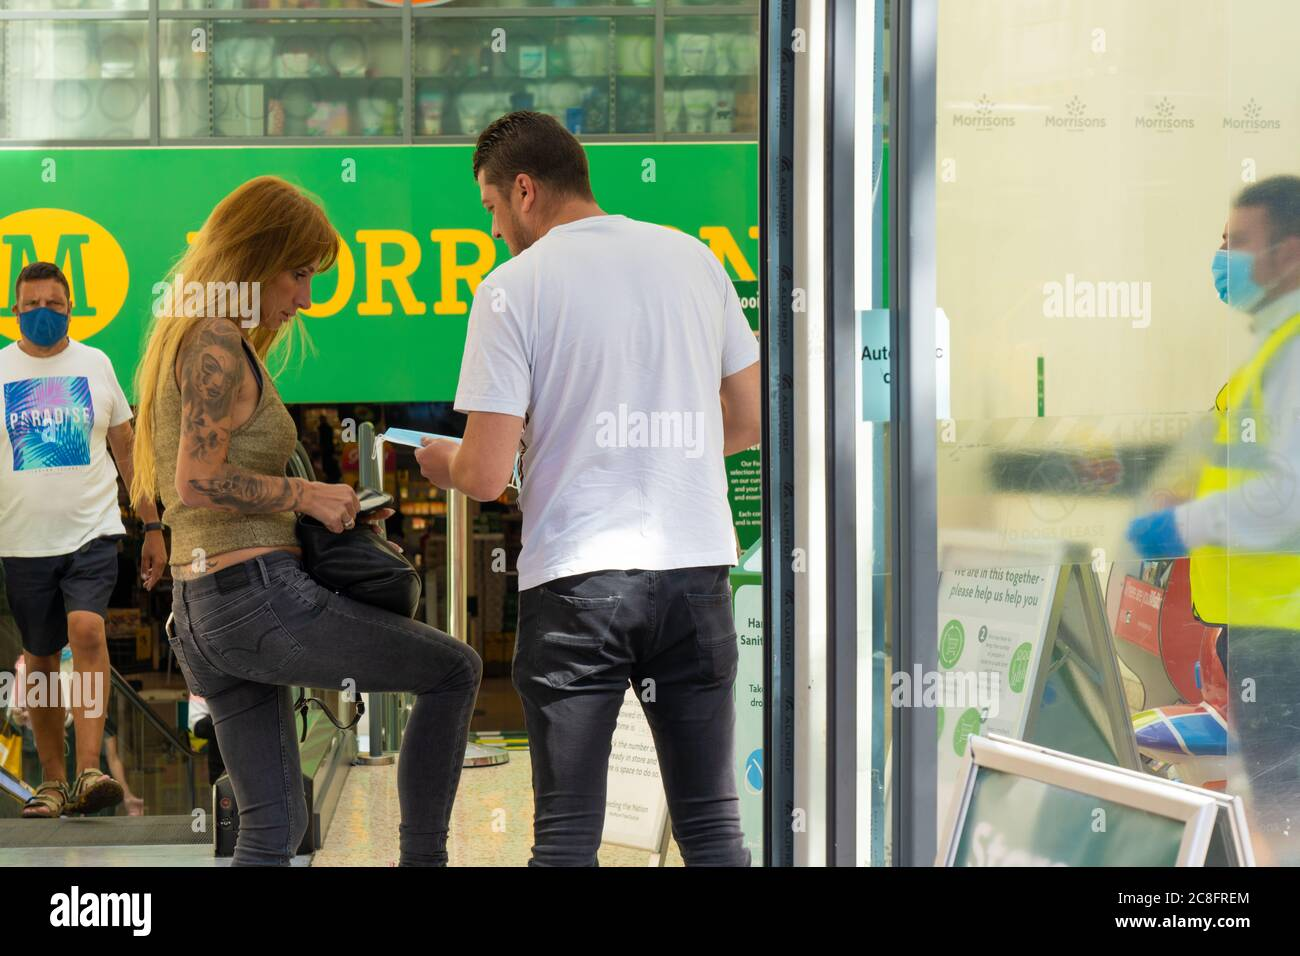 London Uk Friday 24 July 2020 Shoppers Are Given Protective Masks On Entering A Supermarket In